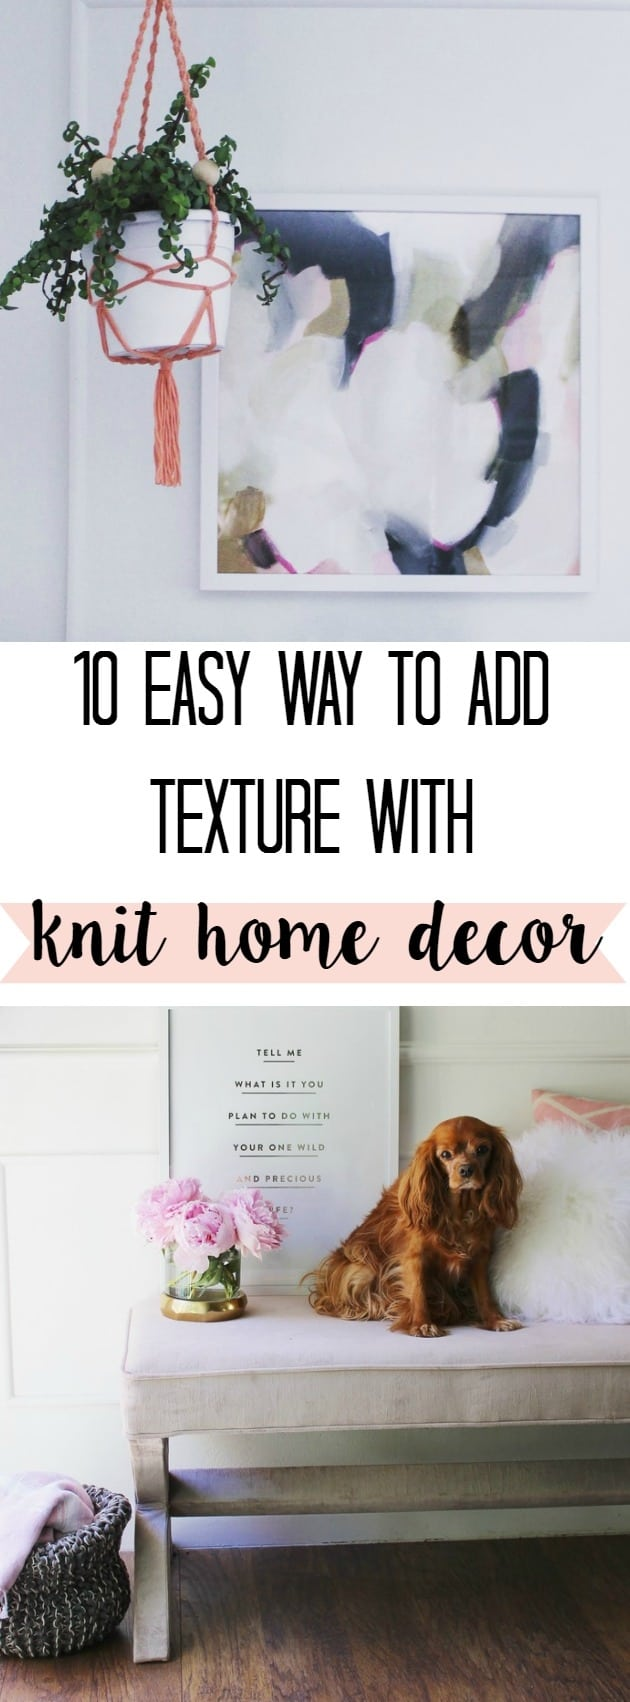 10 Knit Home Decor Ideas - at home with Ashley